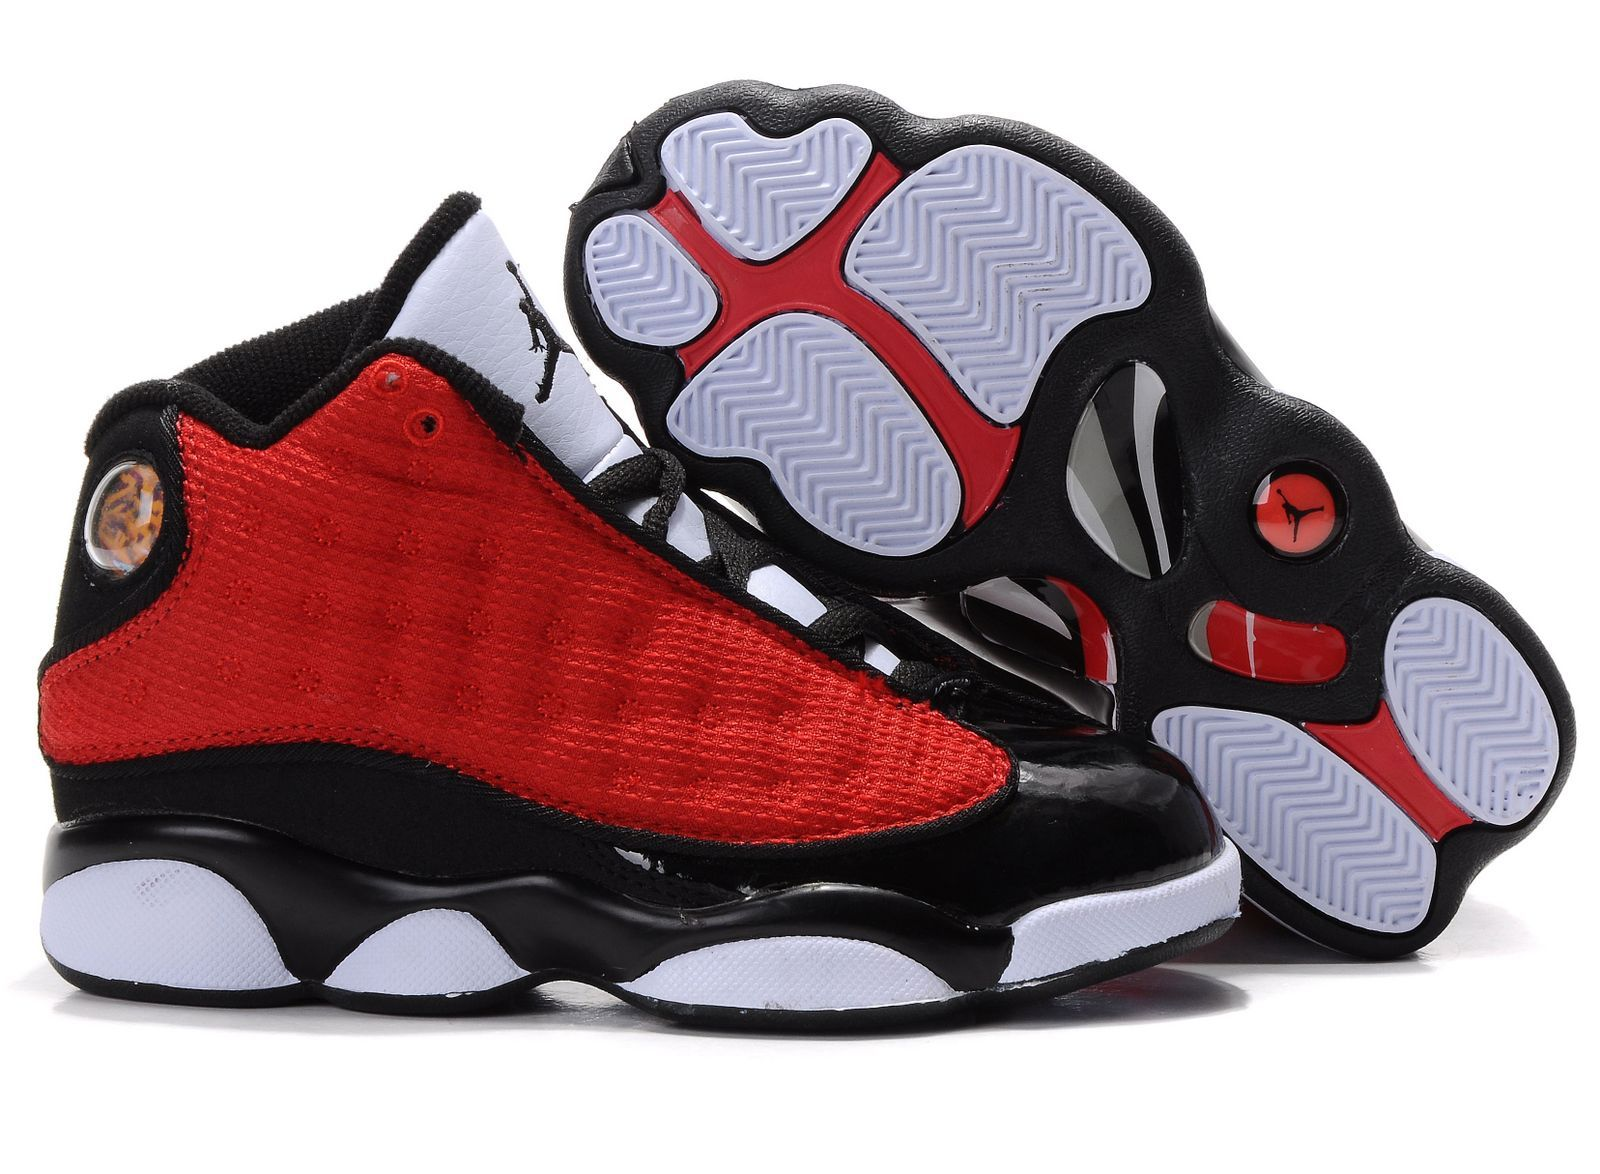 jordans shoes | ... \u0026gt; Air Jordan For Kids \u0026gt; Air Jordan 6 Rings